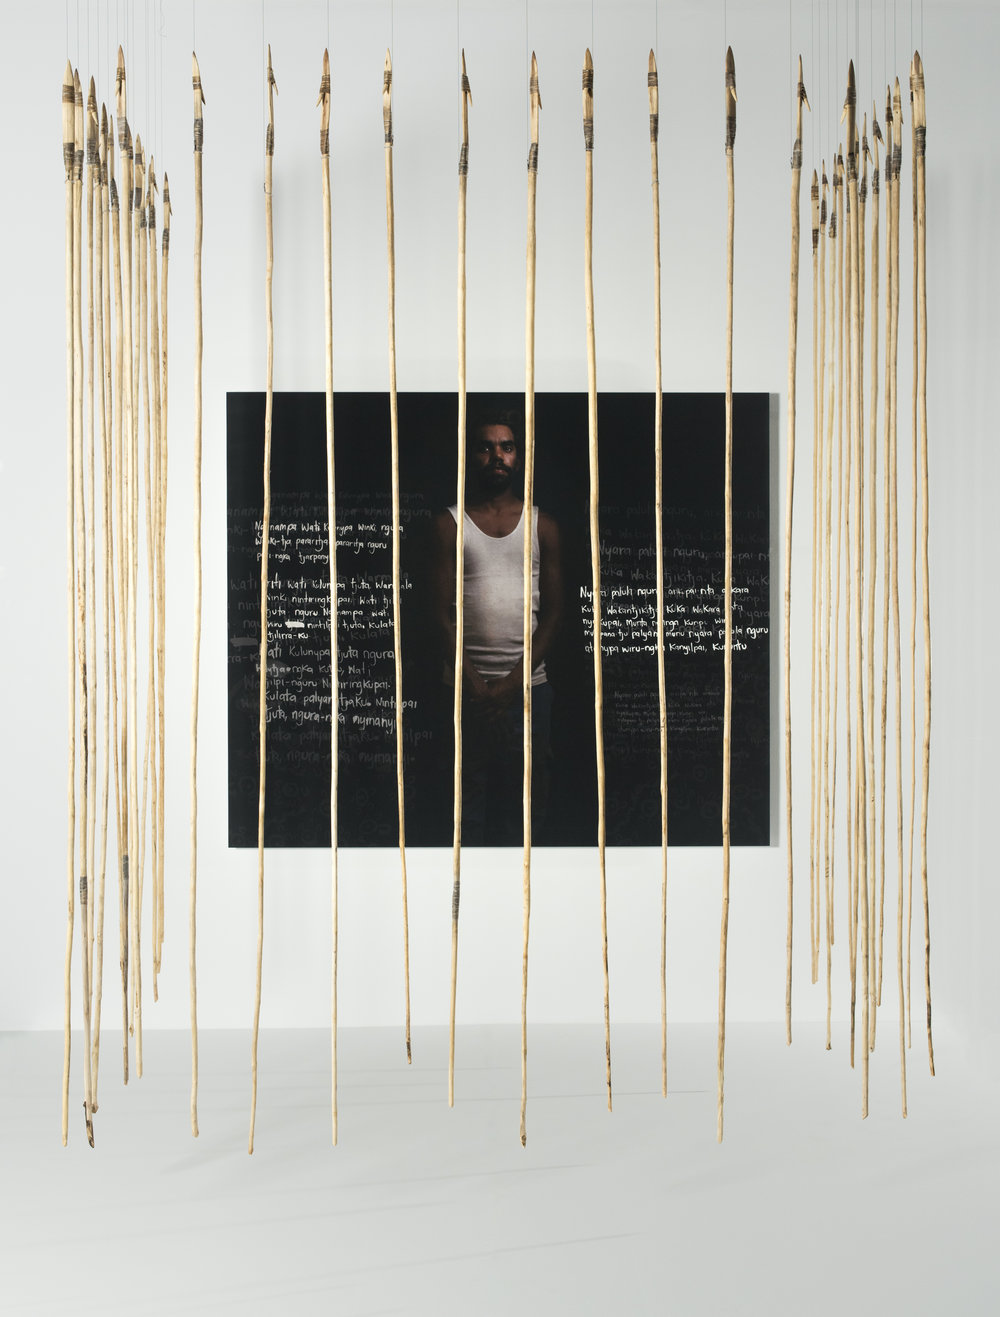 Anwar Young, Unrupa Rhonda Dick and Frank Young, Kulata Tjuta – Wati kulunypa tjukurpa (Many spears – Young fella story), 2017, digital print, wood, kangaroo tendon, kiti (natural glue); print 148 x 176cm; spears 280 x 2 x 2cm approx. (37 pieces); image courtesy the artists and the Museum and Art Gallery of the Northern Territory, Darwin